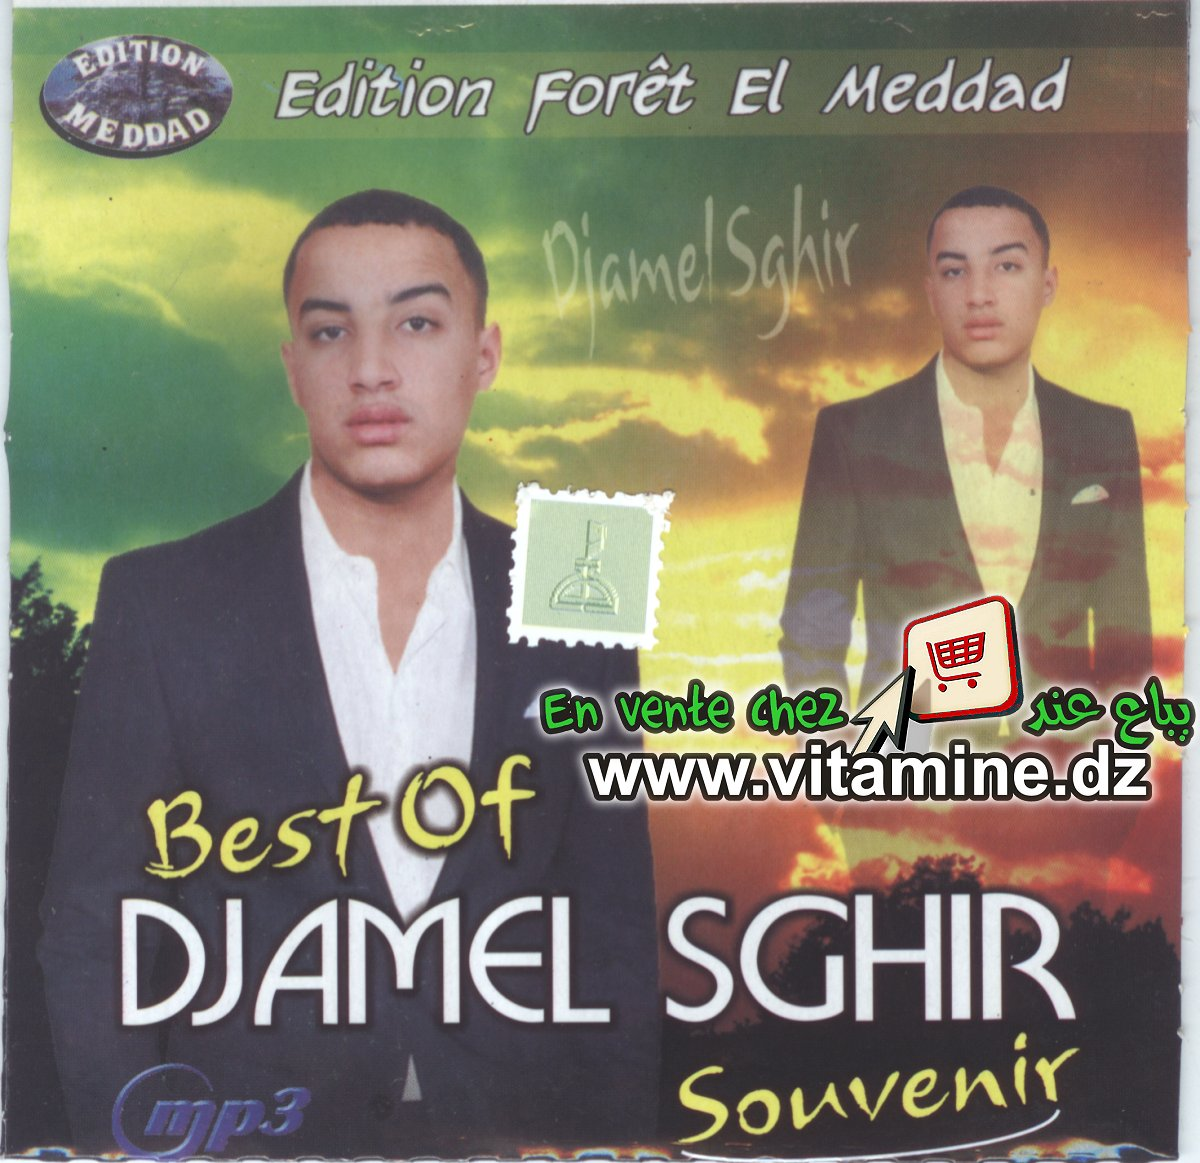 Djamel Sghir - best of